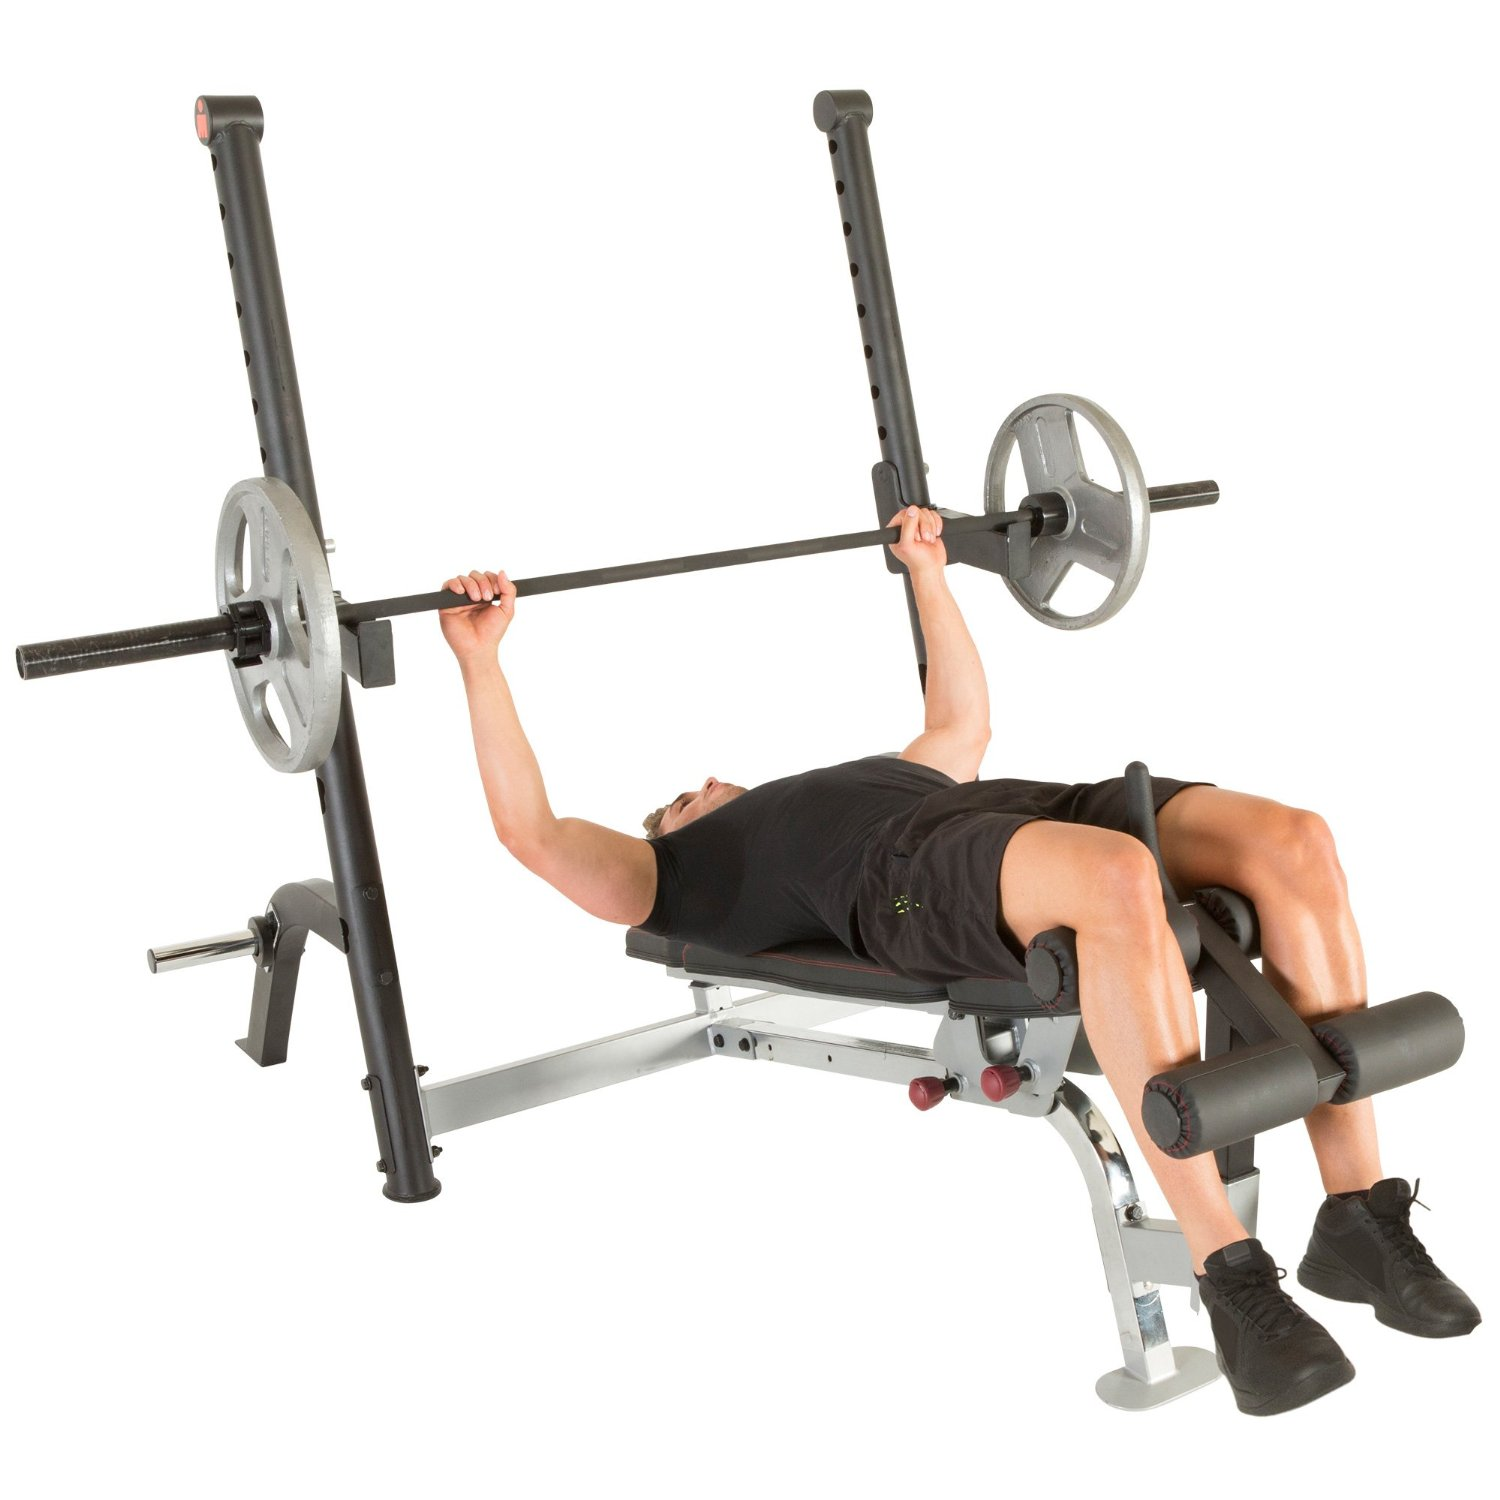 set weights with full product uts for bench click lb weight and fingerhut image va standard over scl zoom hover lifemax to